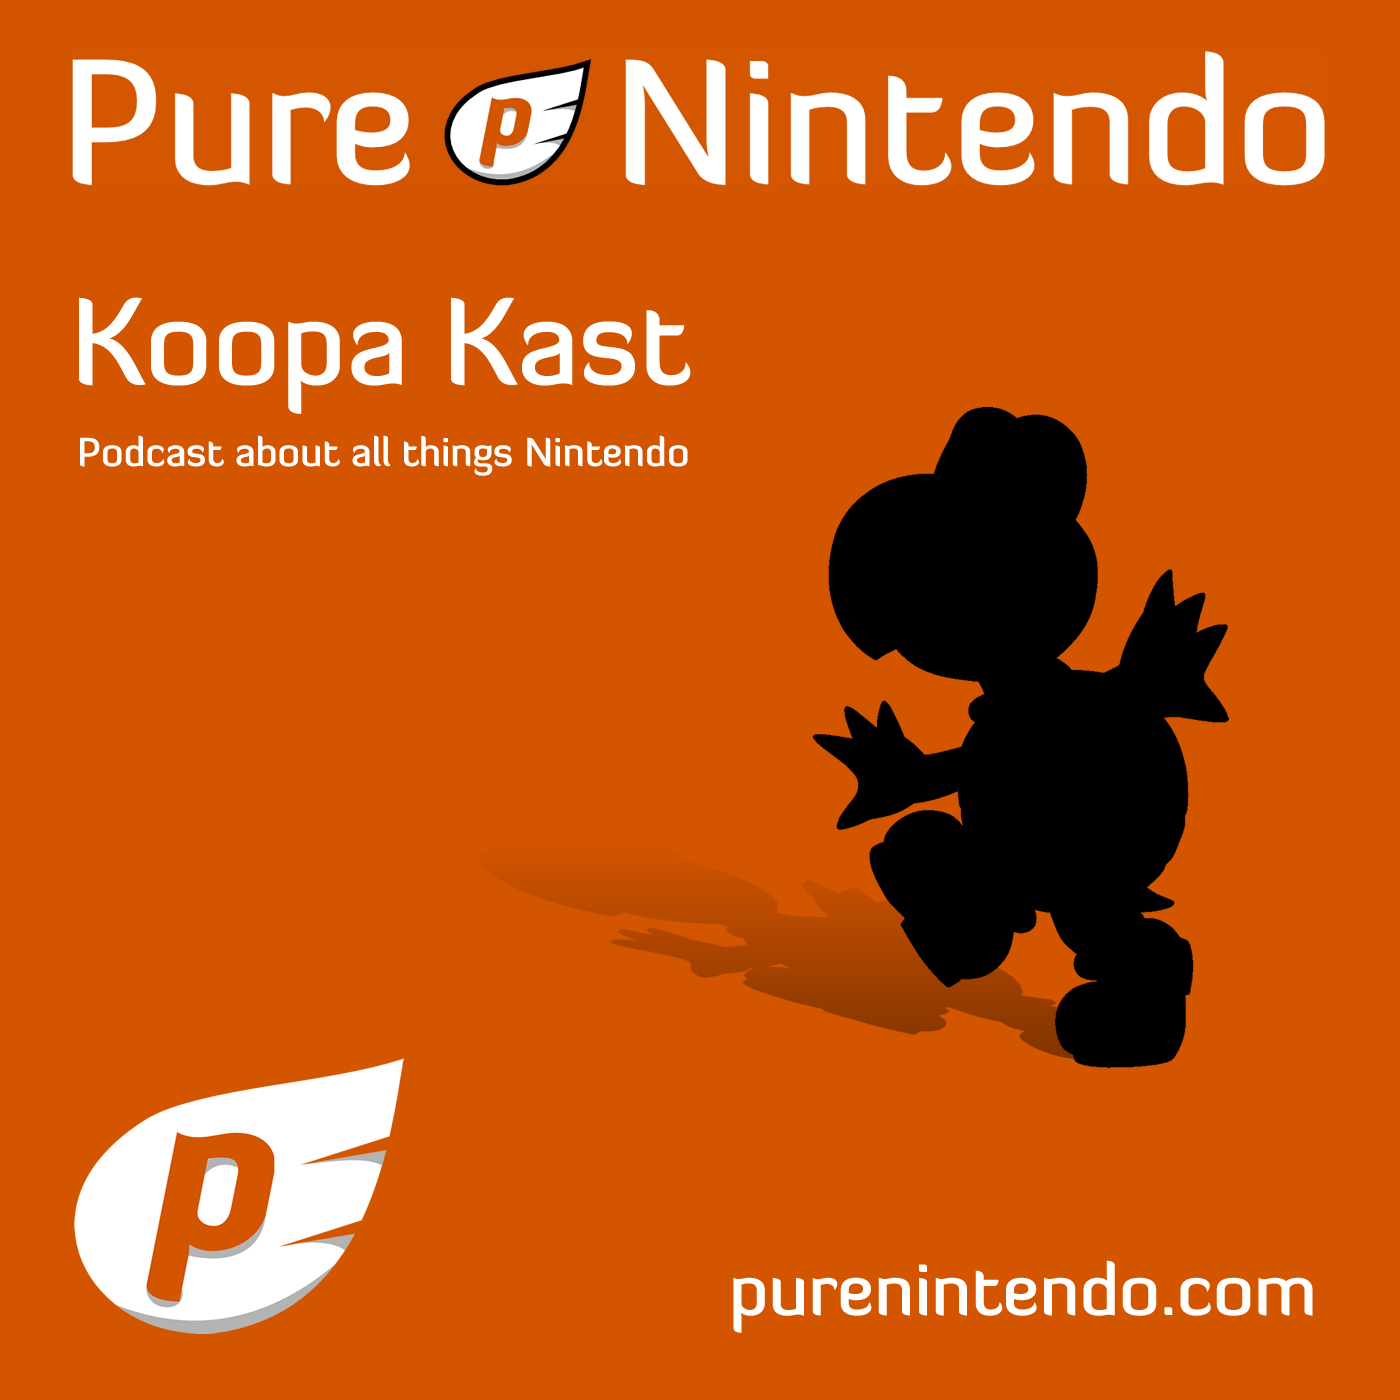 Koopa Kast Episode 52 – Why Aren't We Allowed in the Treehouse?